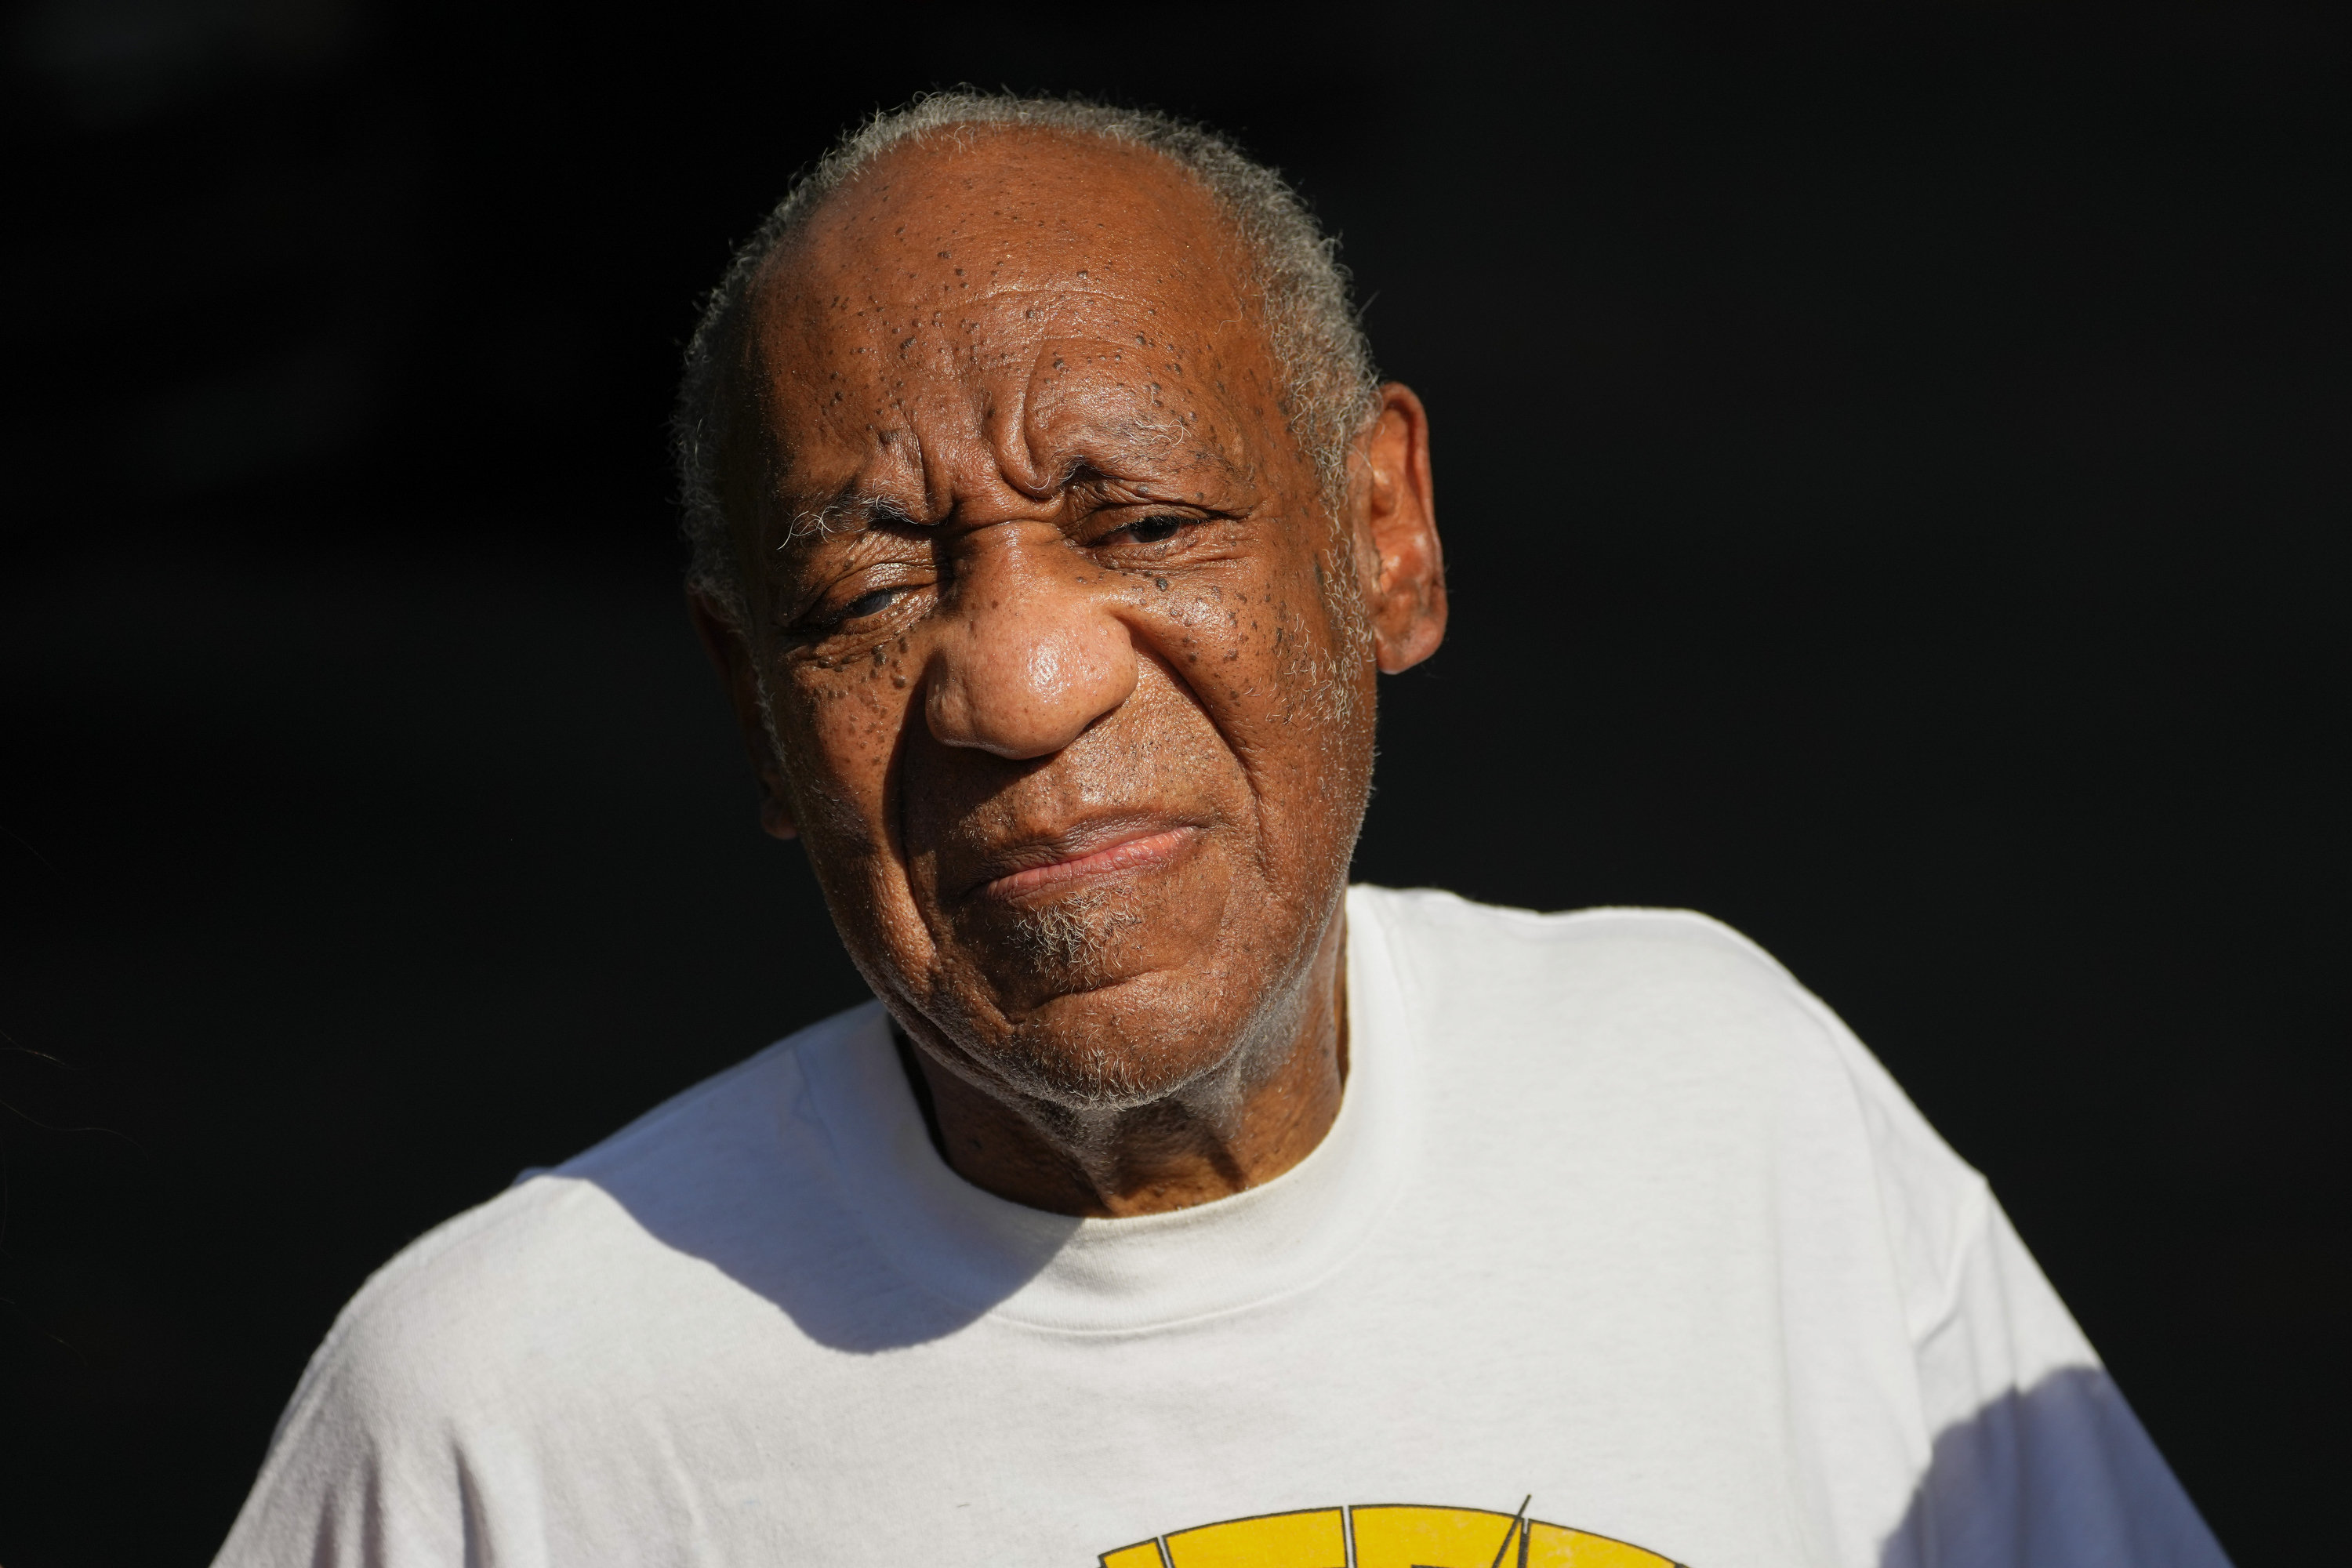 Bill Cosby sued by ex-'Cosby Show' actress Lili Bernard for alleged sexual assault